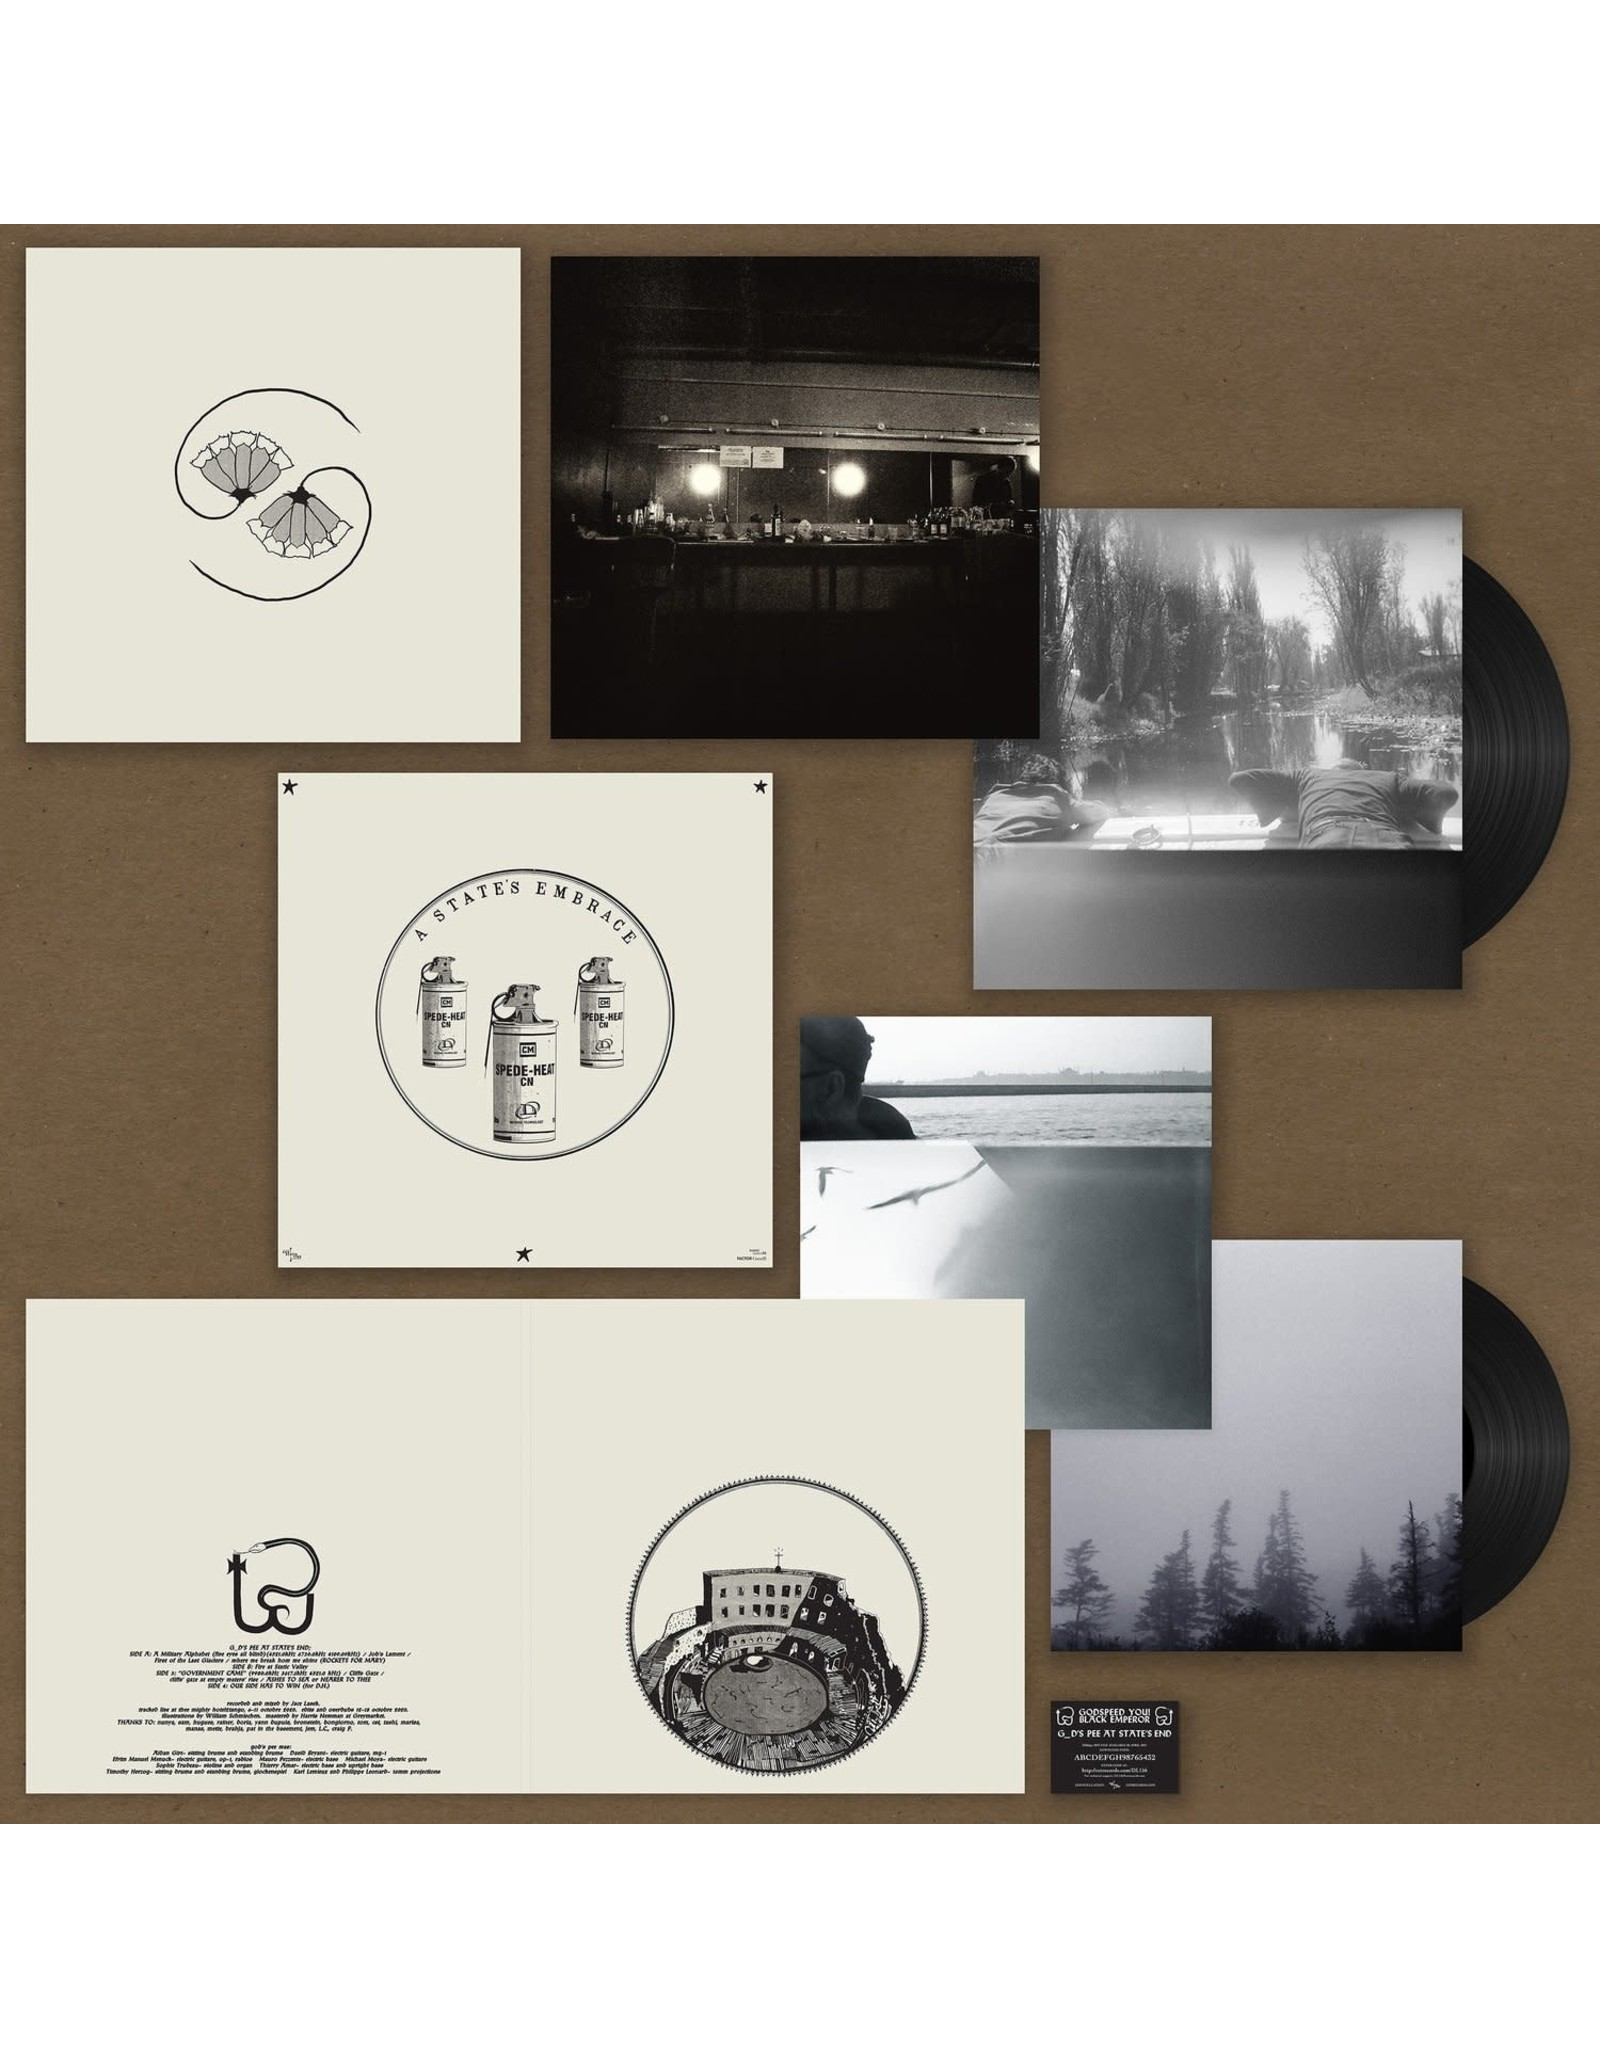 Constellation Godspeed You! Black Emperor: G_d's Pee AT STATE'S END! LP